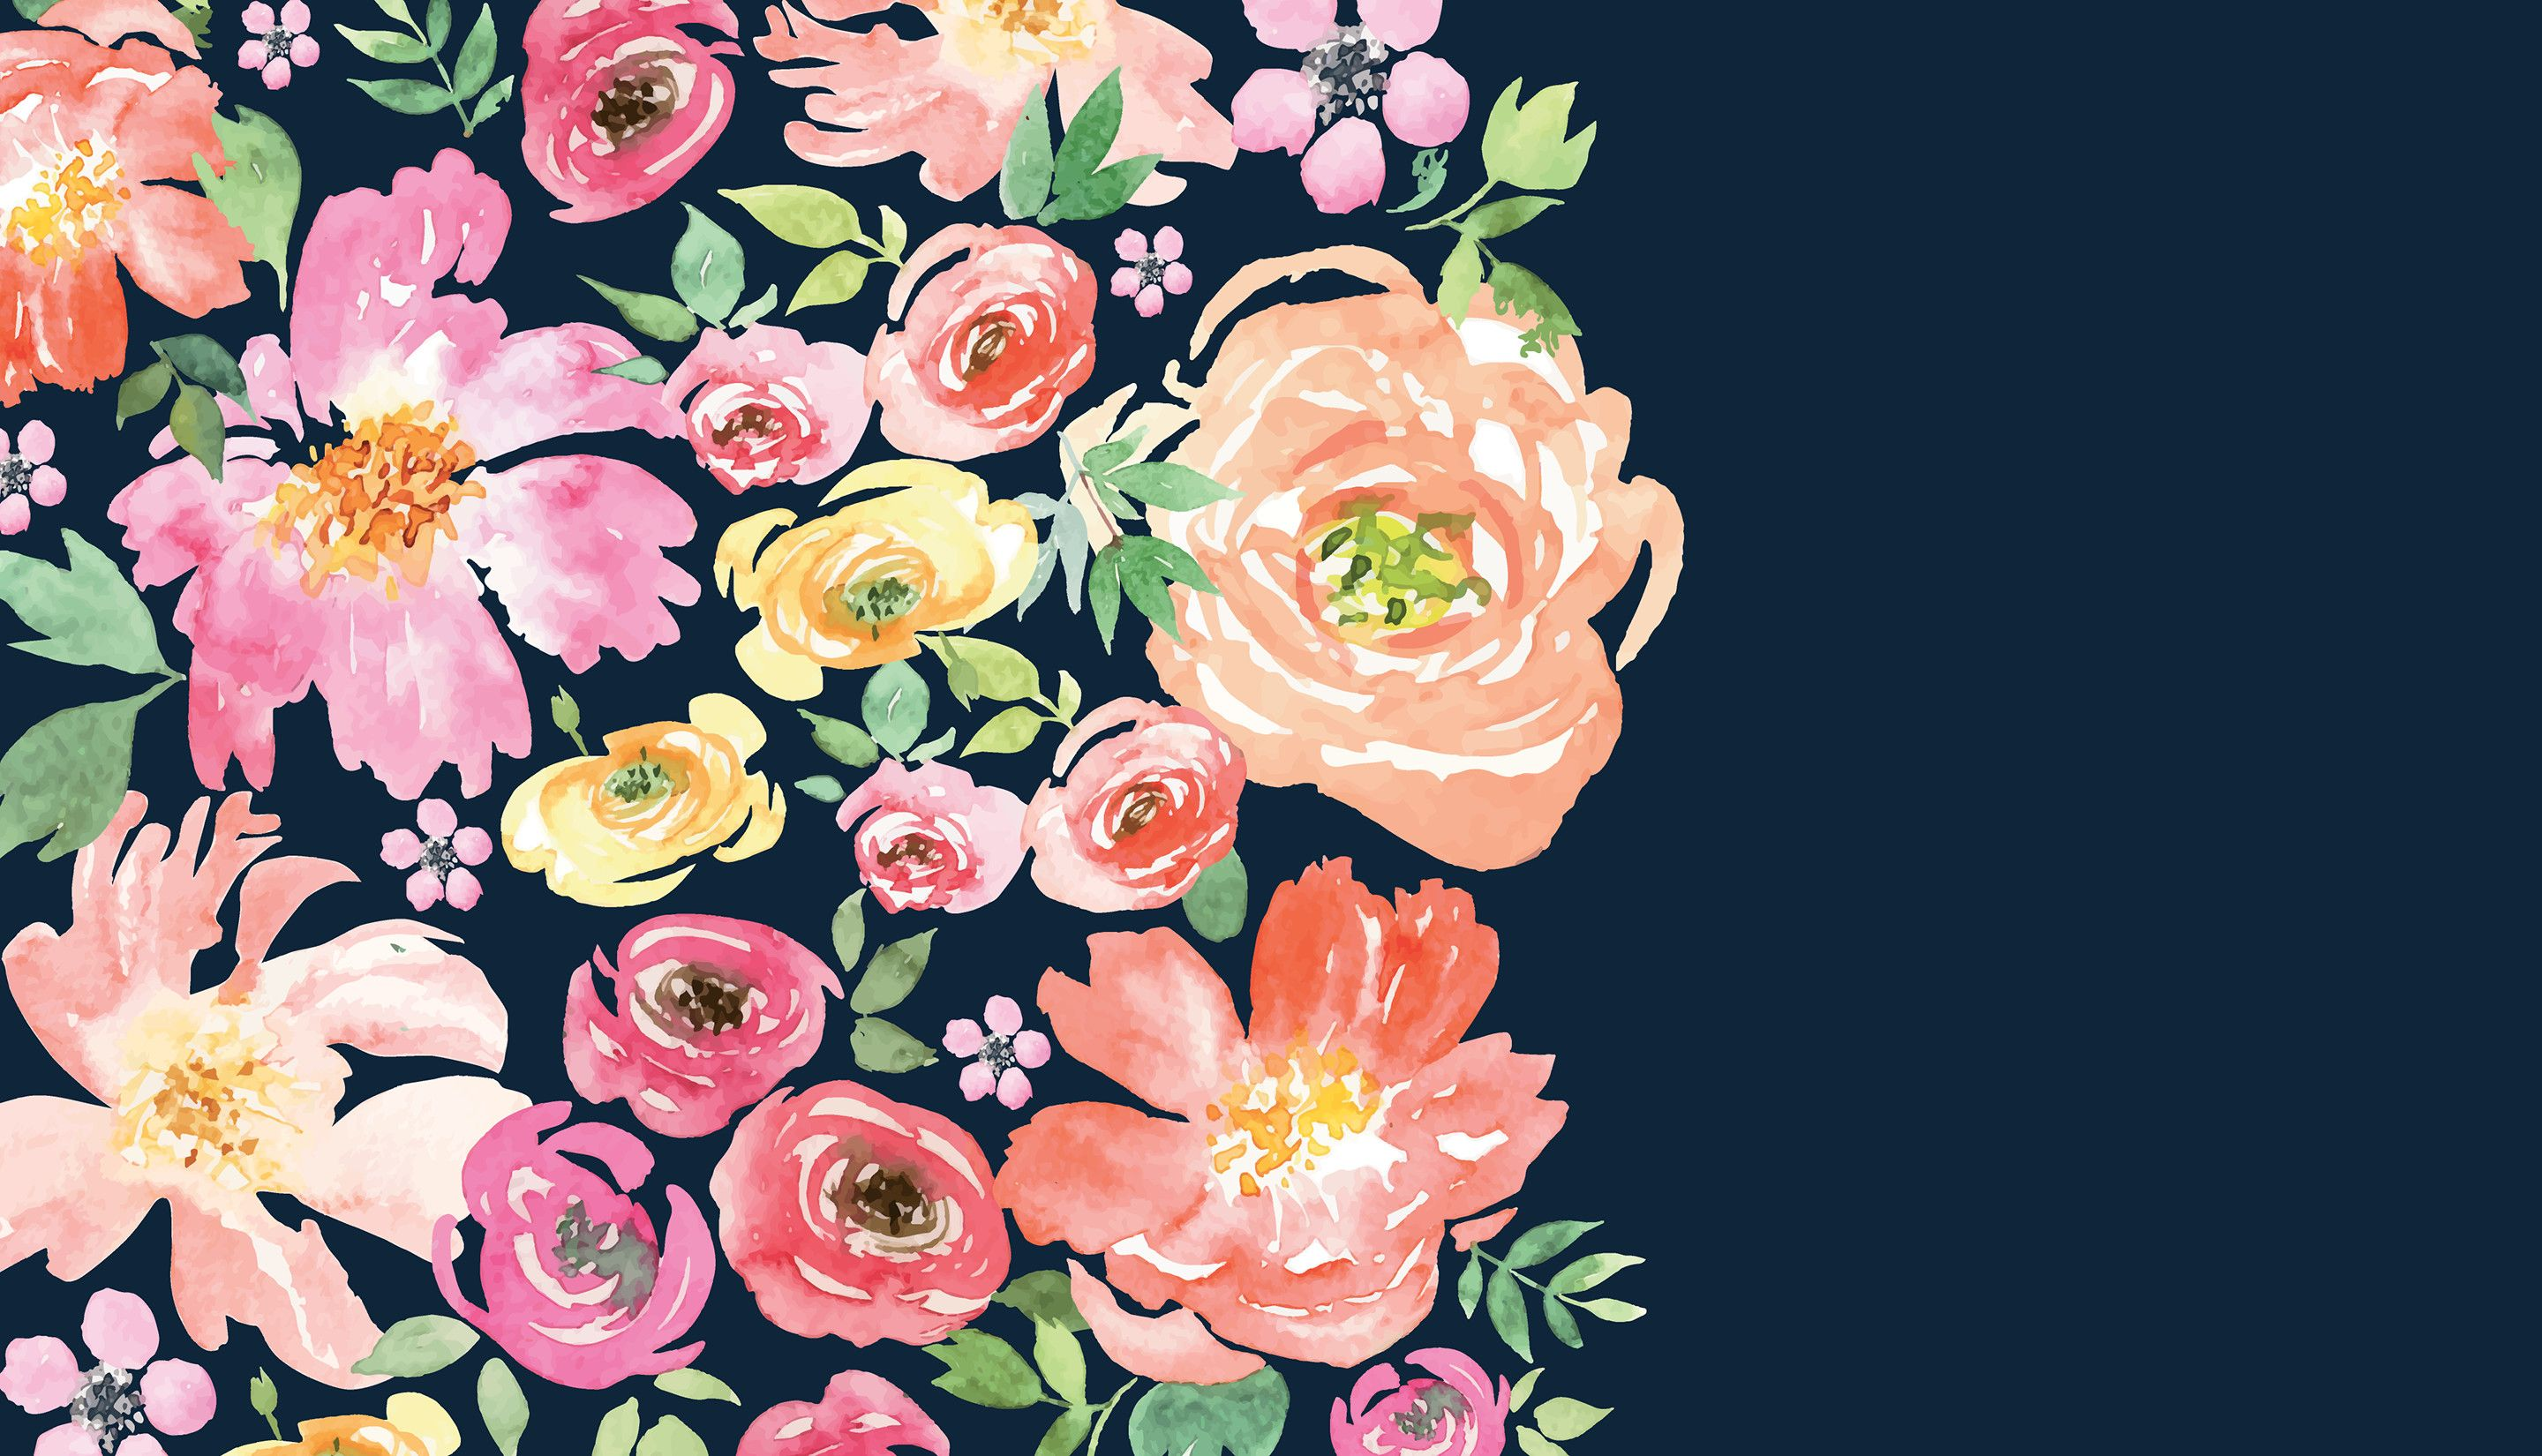 Floral Computer Wallpapers On Wallpaperdog